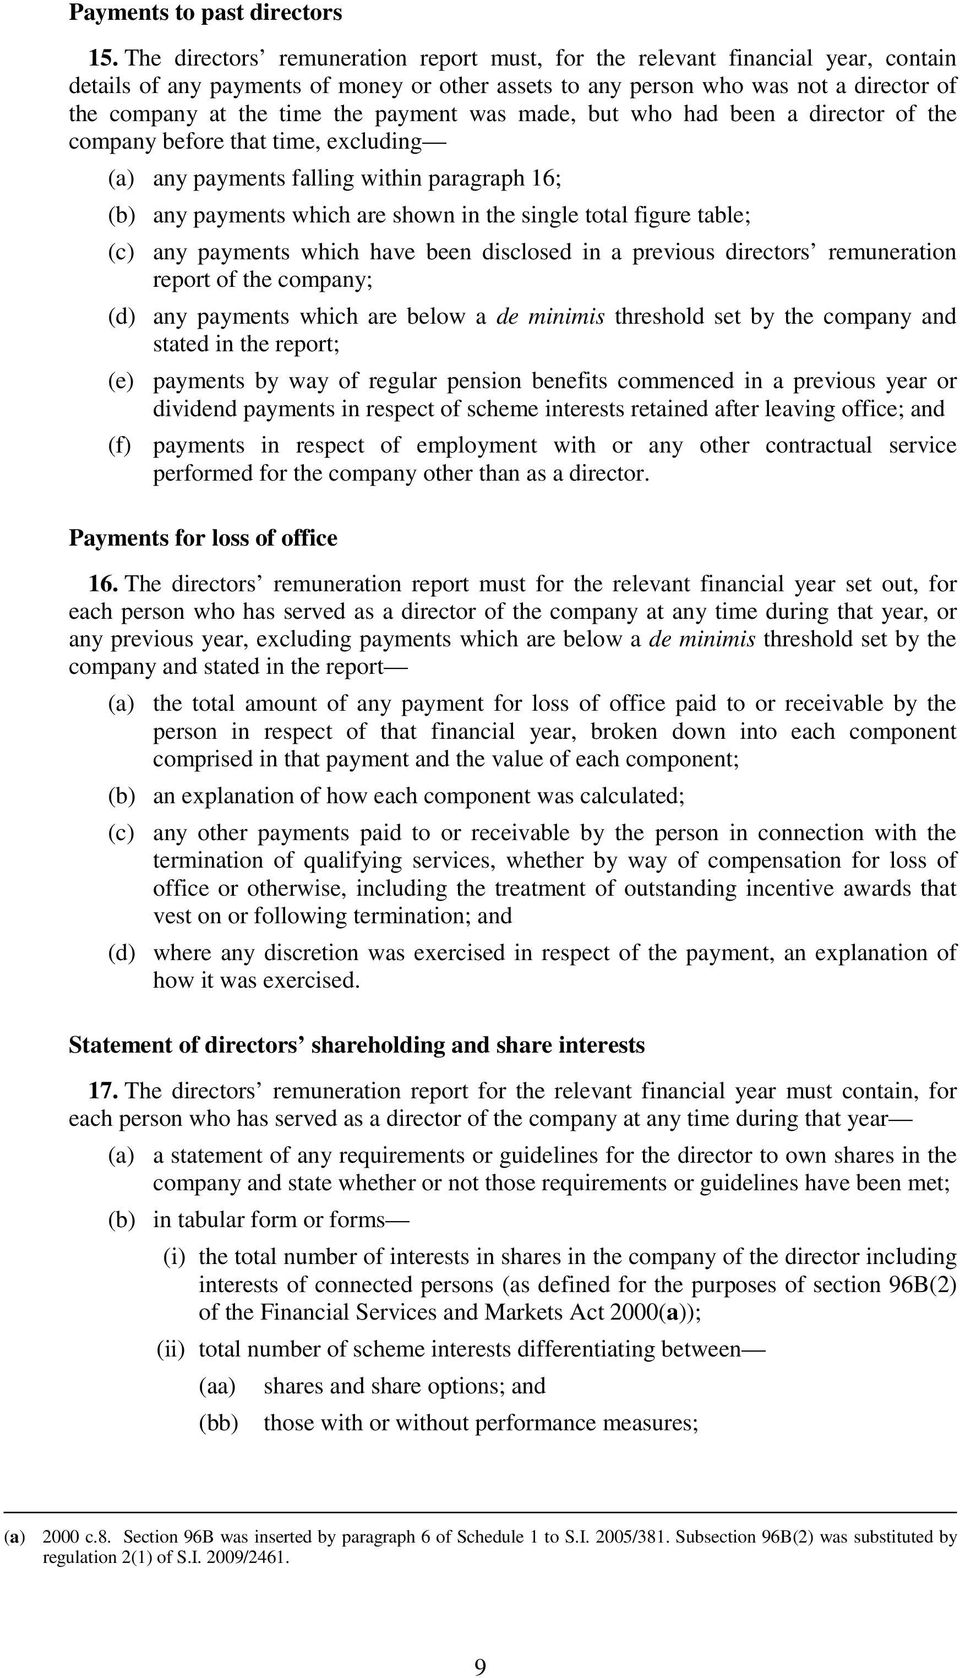 payment was made, but who had been a director of the company before that time, excluding (a) any payments falling within paragraph 16; (b) any payments which are shown in the single total figure